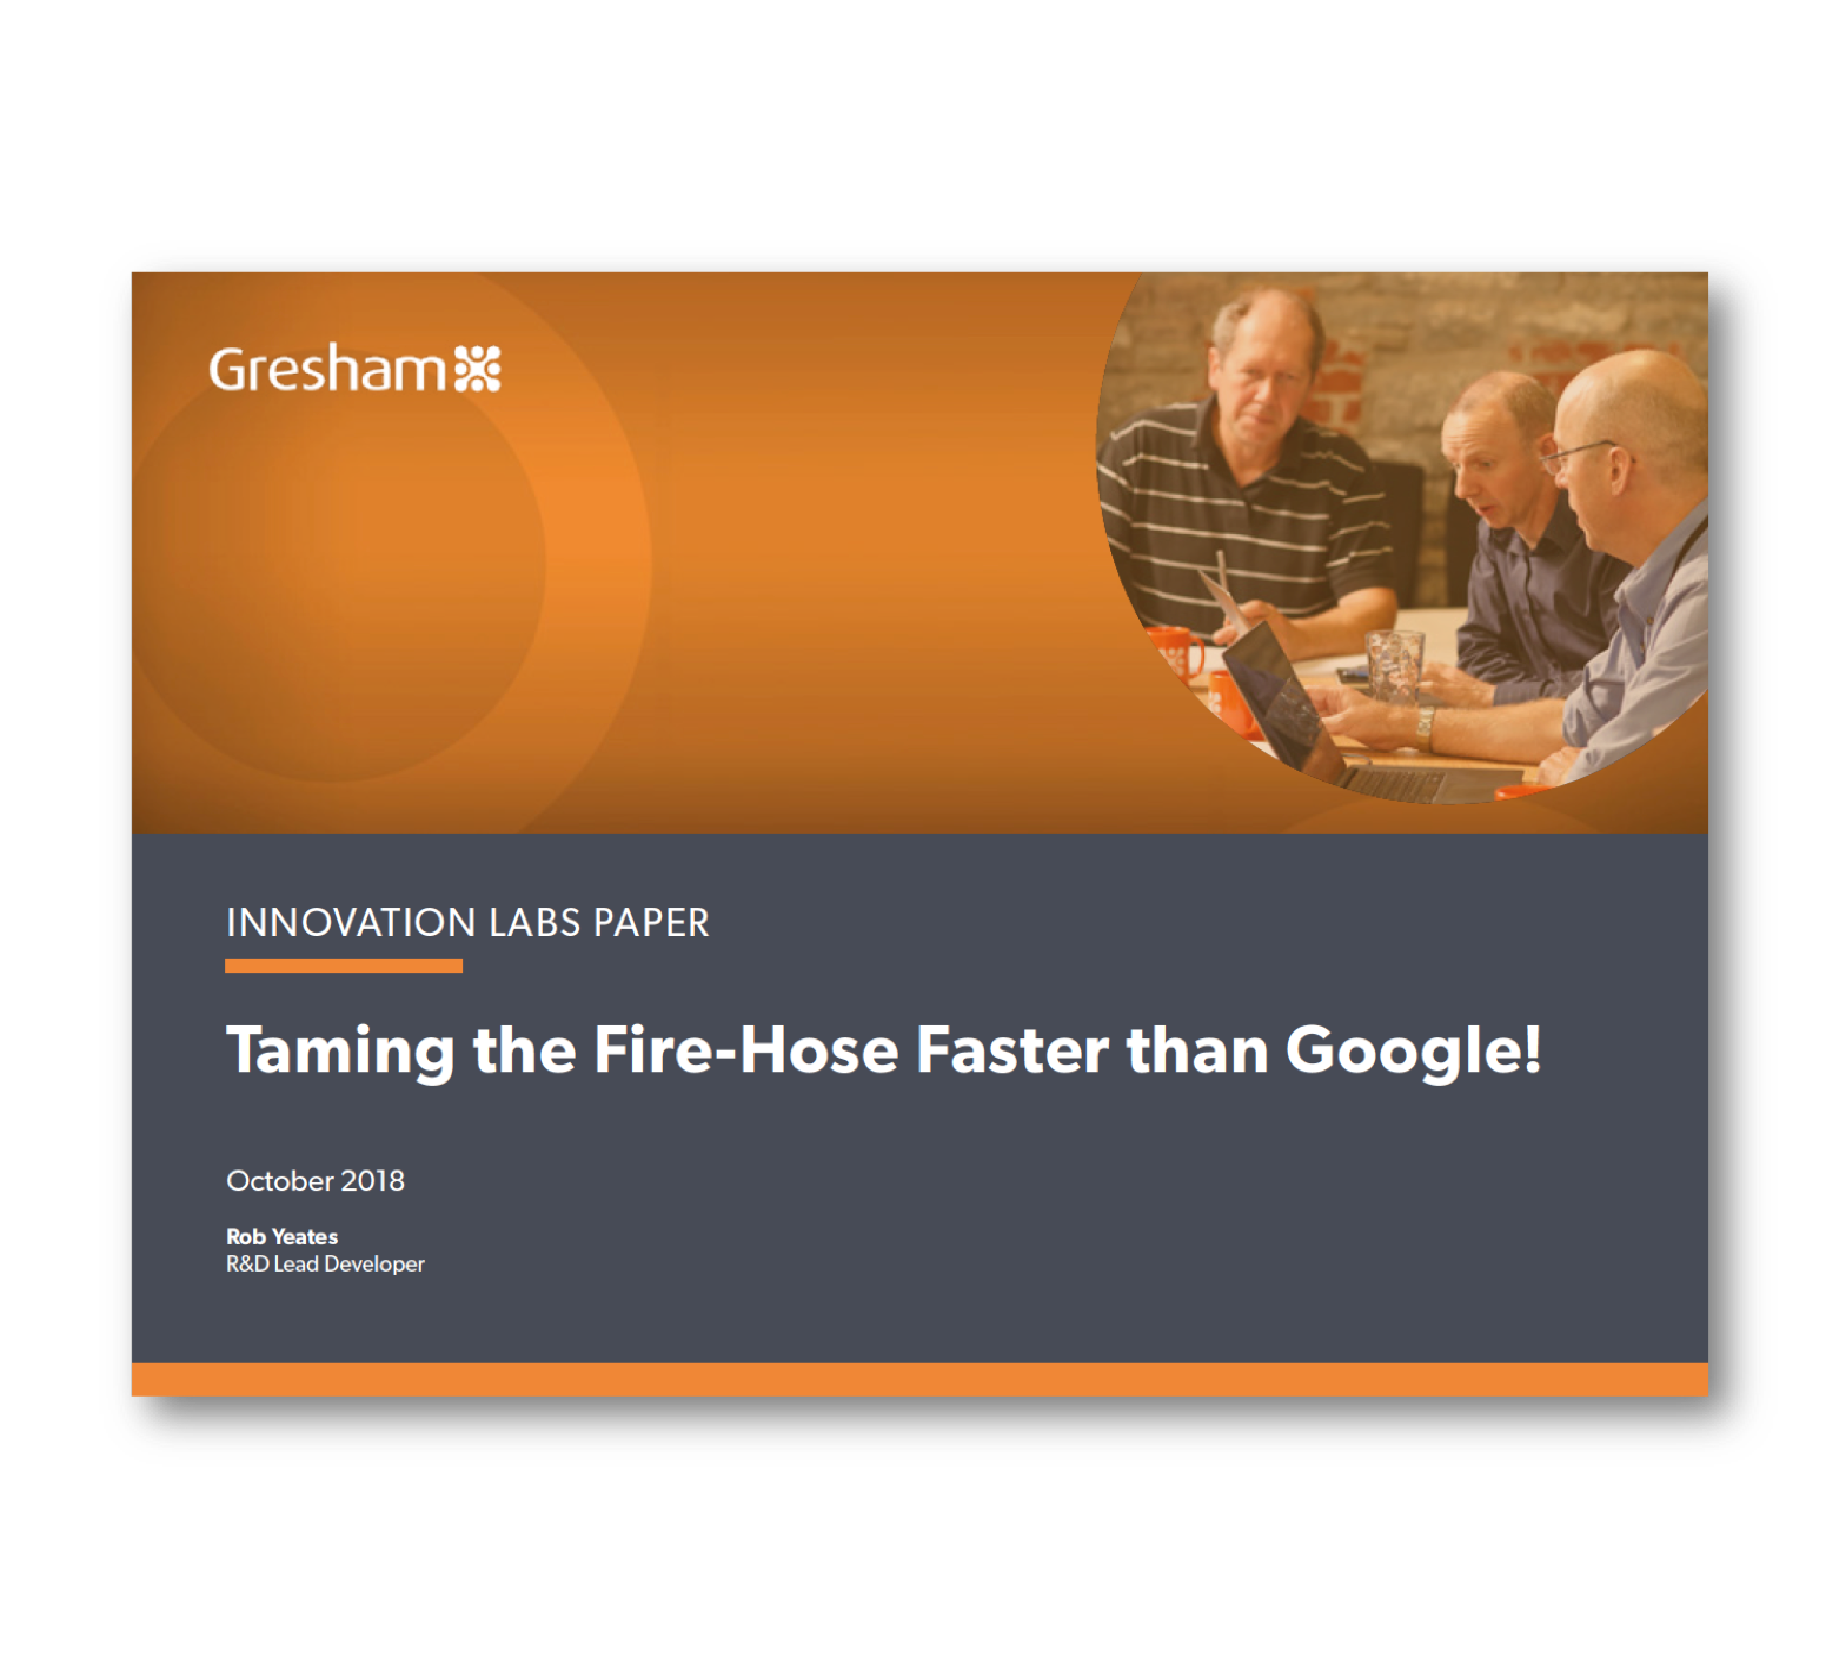 Taming the Fire-Hose Faster than Google!